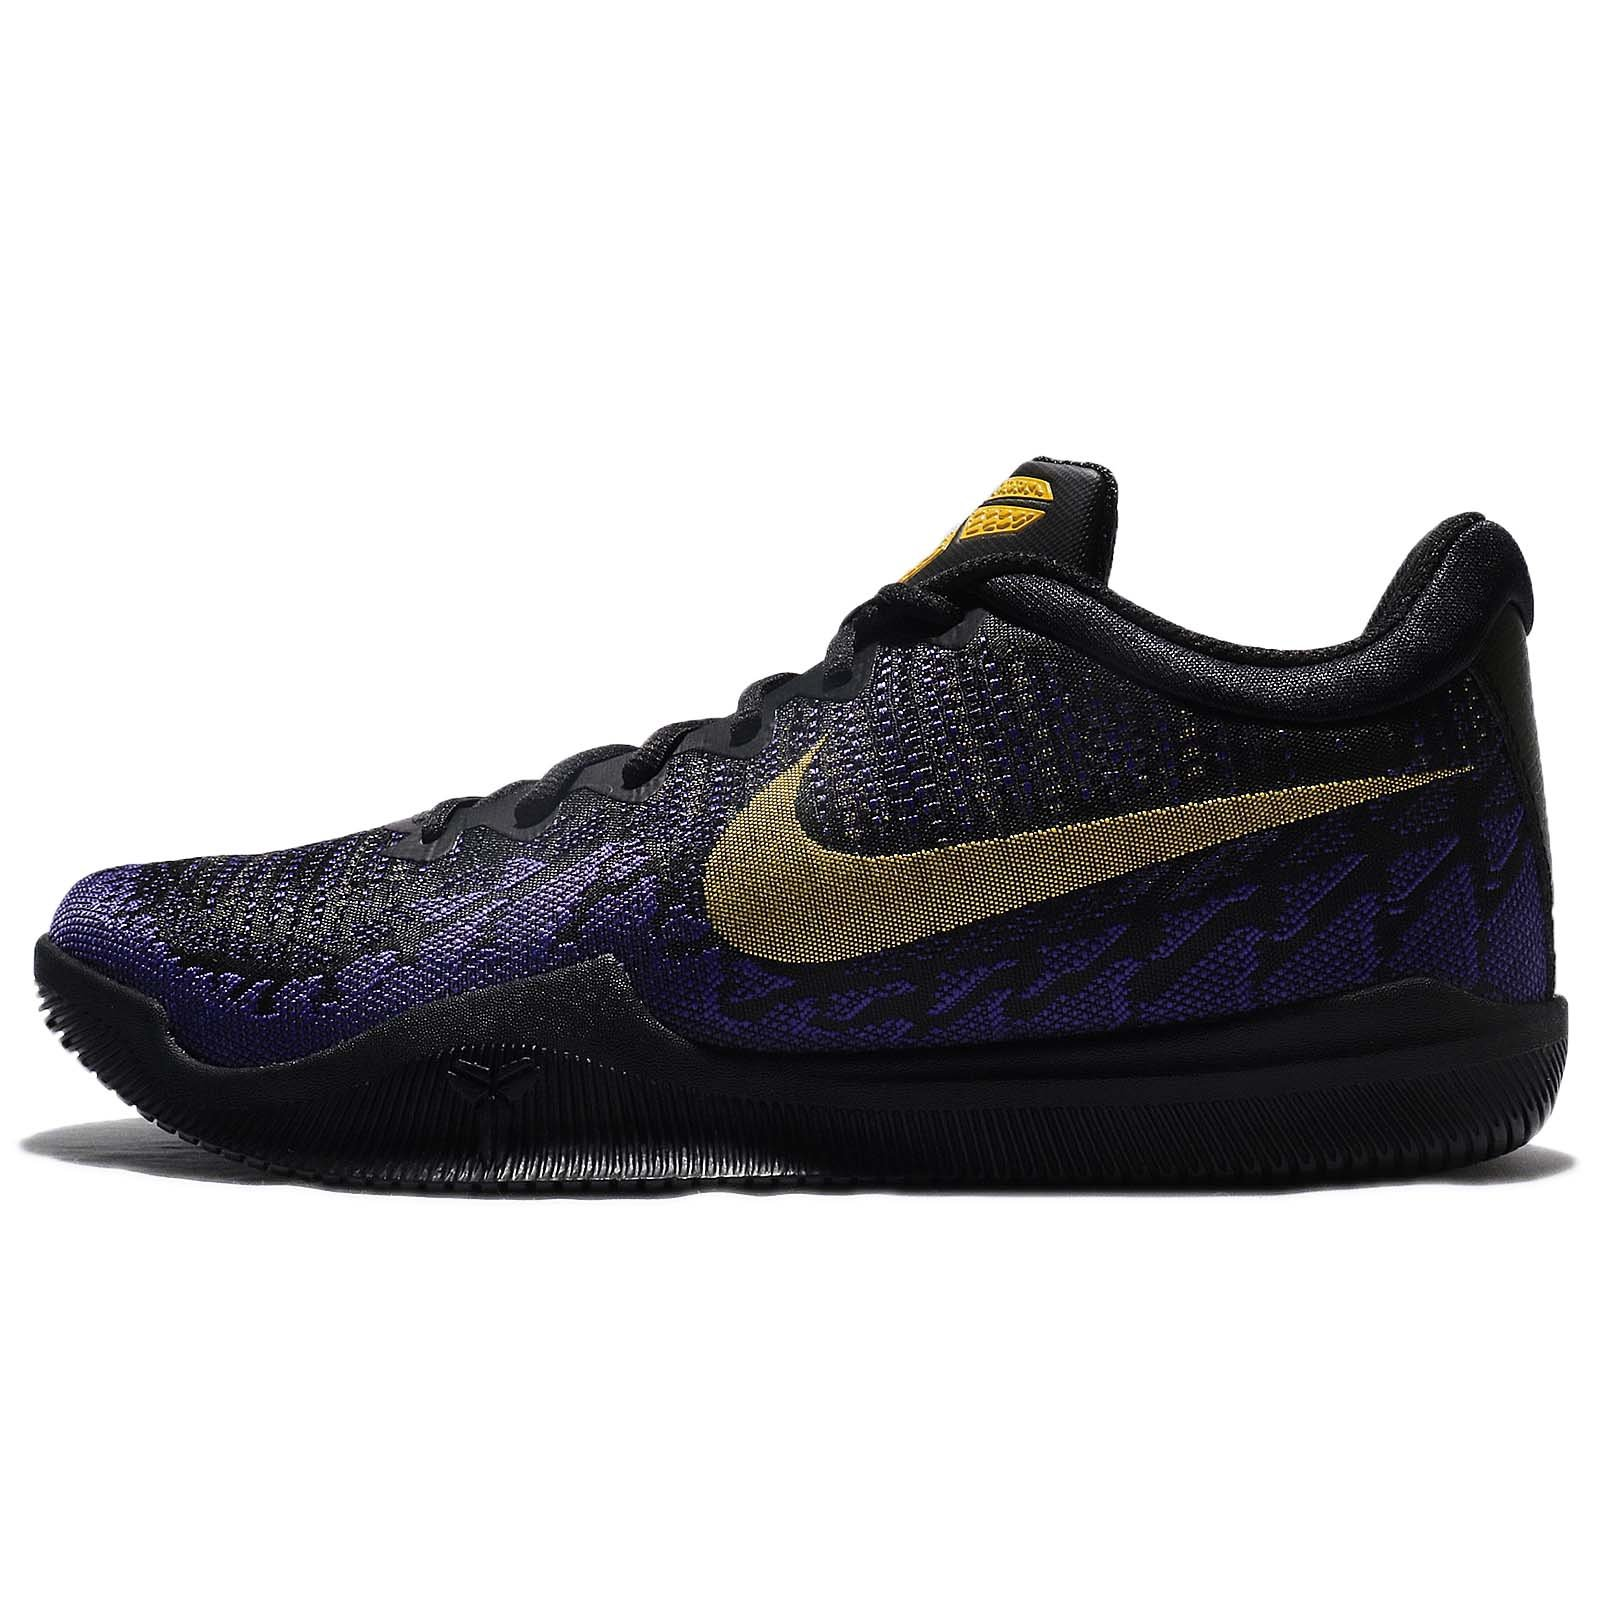 Galleon - Nike Men s Mamba Rage Basketball Shoe Black Tour Yellow Court  Purple (9.5 7a7e9885c